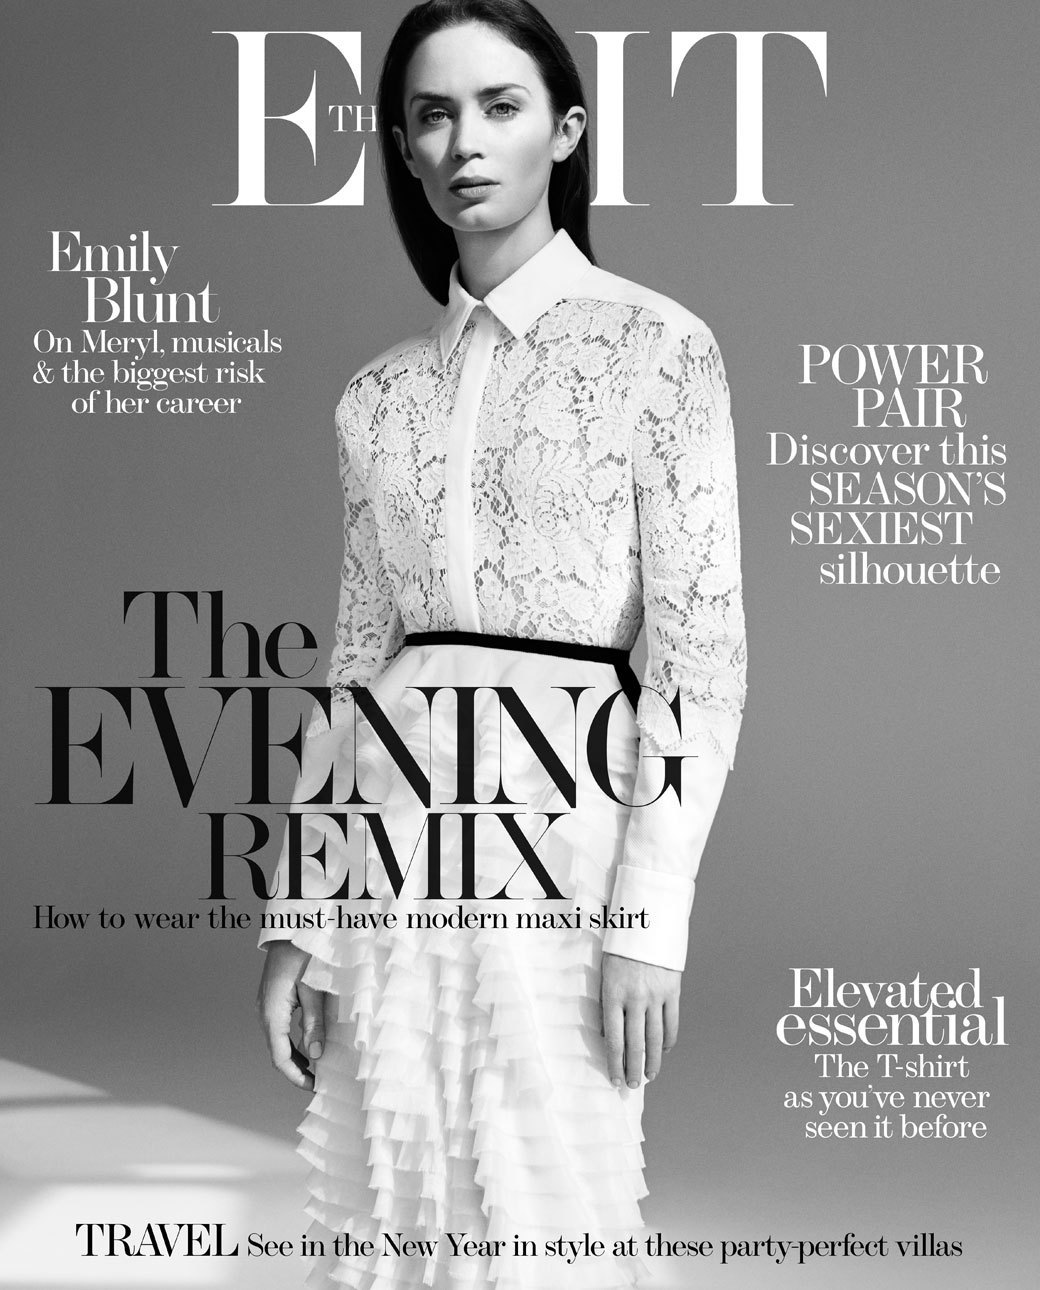 Le Meilleur Emily Blunt Dazzles In A Crop Top For The Edit Huffpost Ce Mois Ci